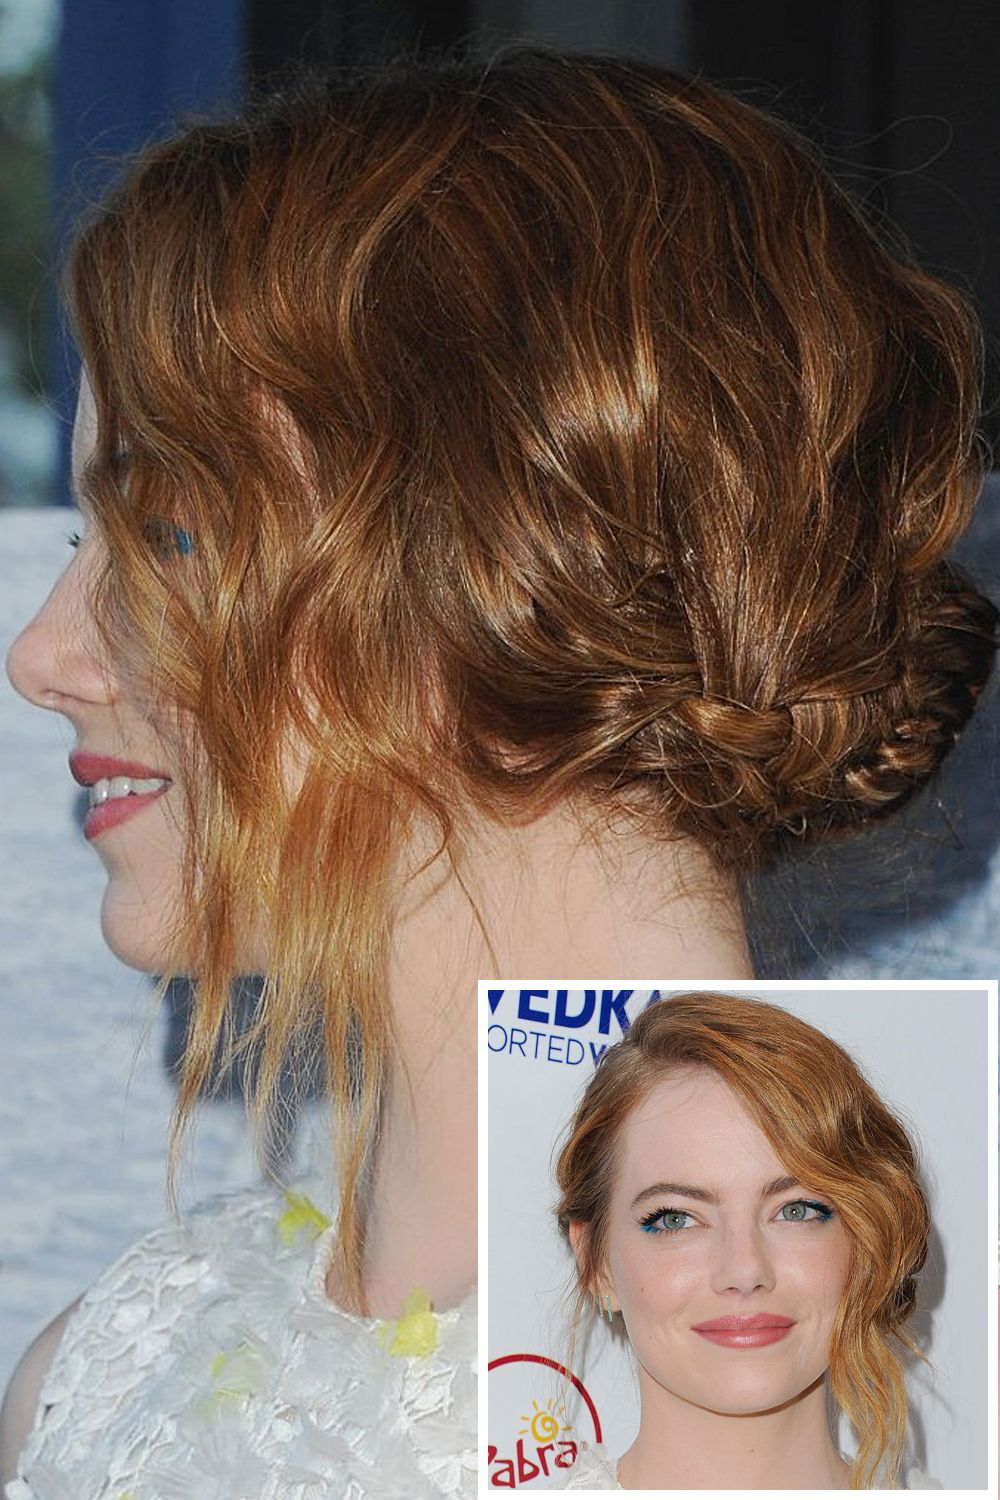 13 Easy Updos For Short Hair Best Short Updo Hairstyles To Try